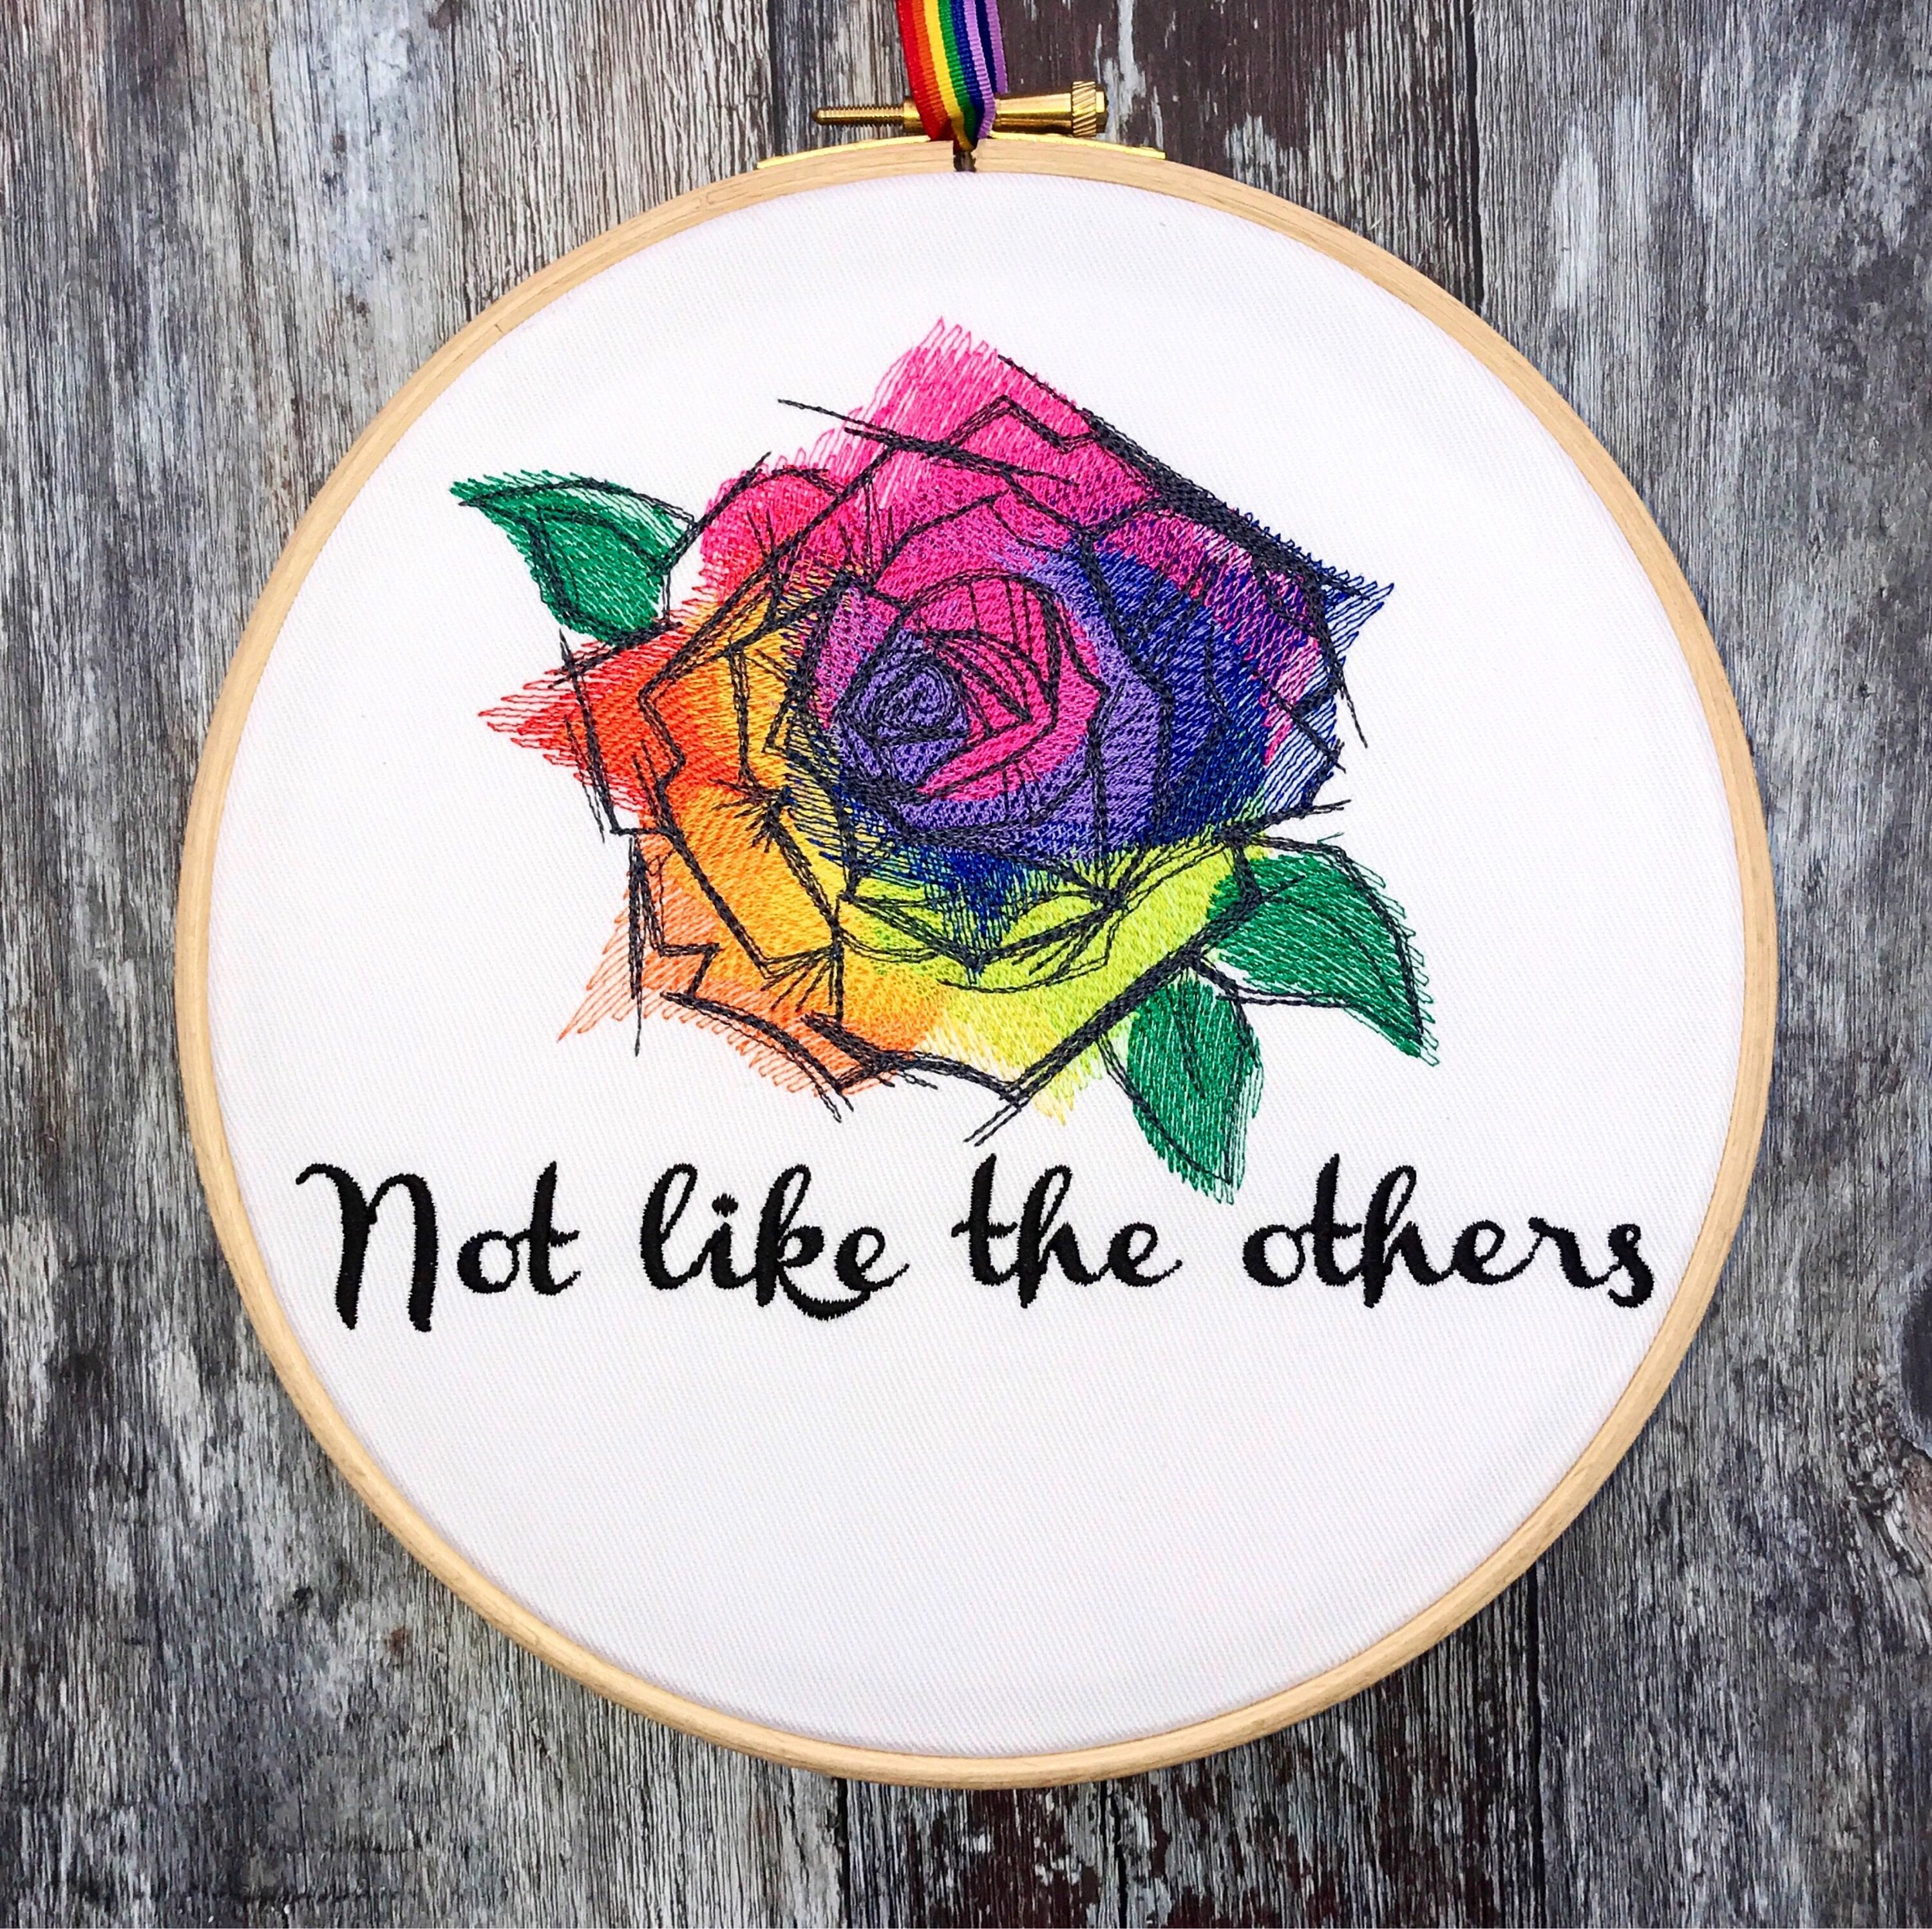 Not like the others, Rainbow Rose, Foo Fighters, Embroidery hoop art